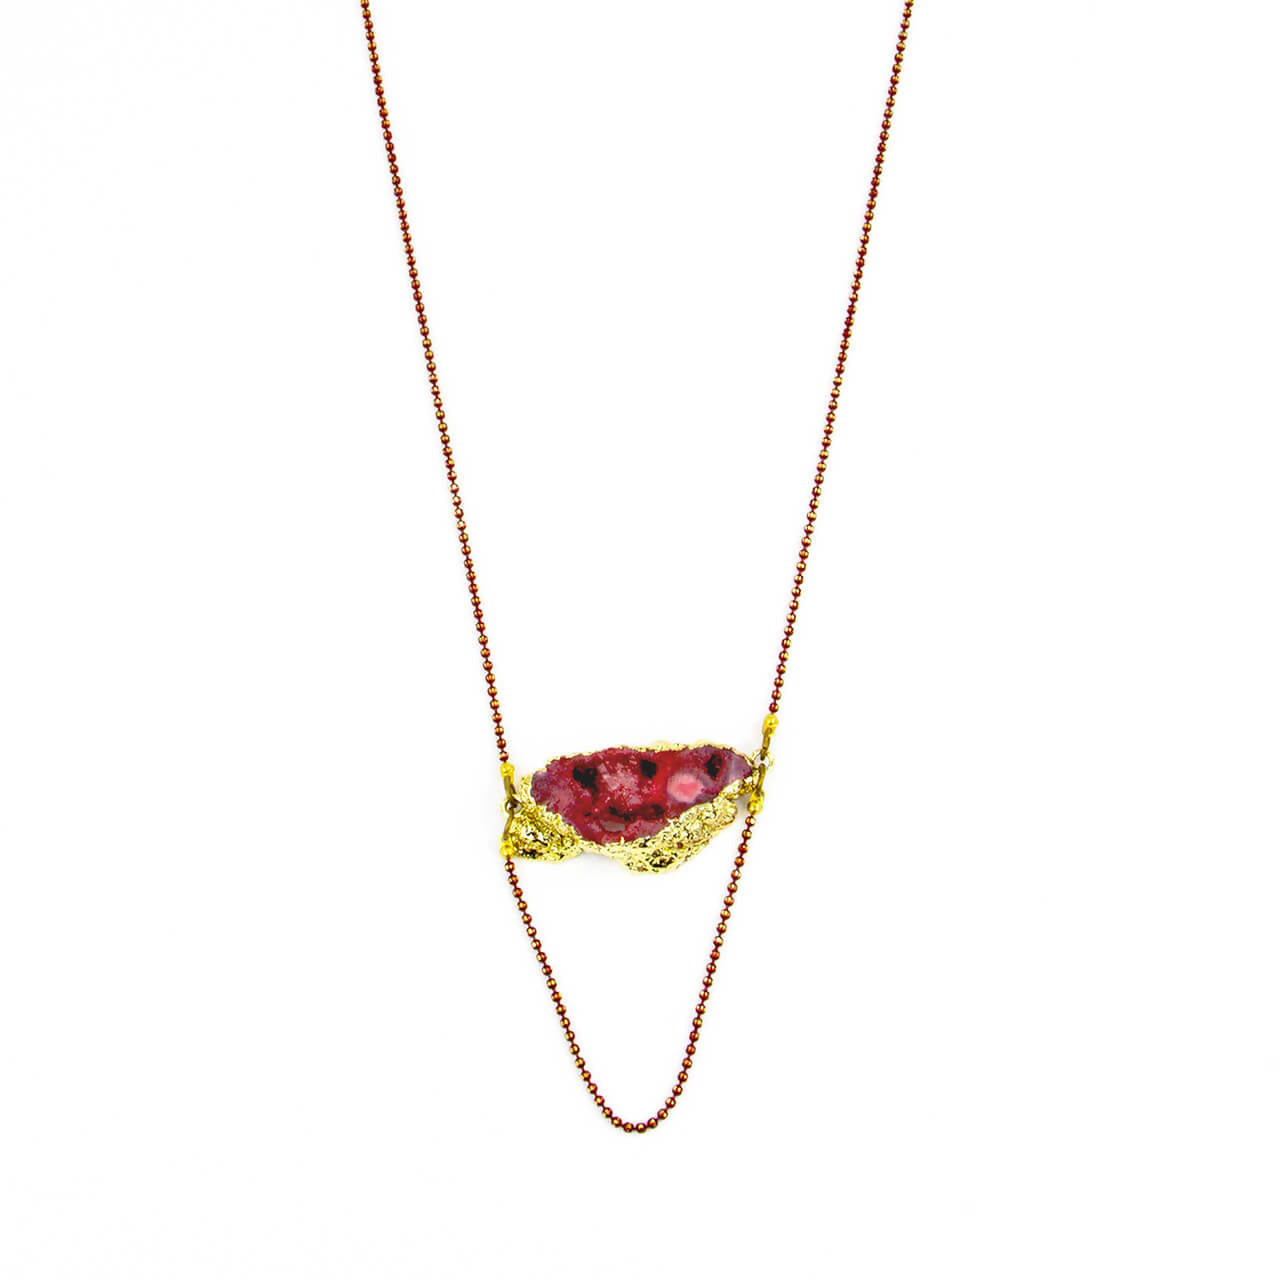 Short Burgundy Druzy Quartz Drape Necklace